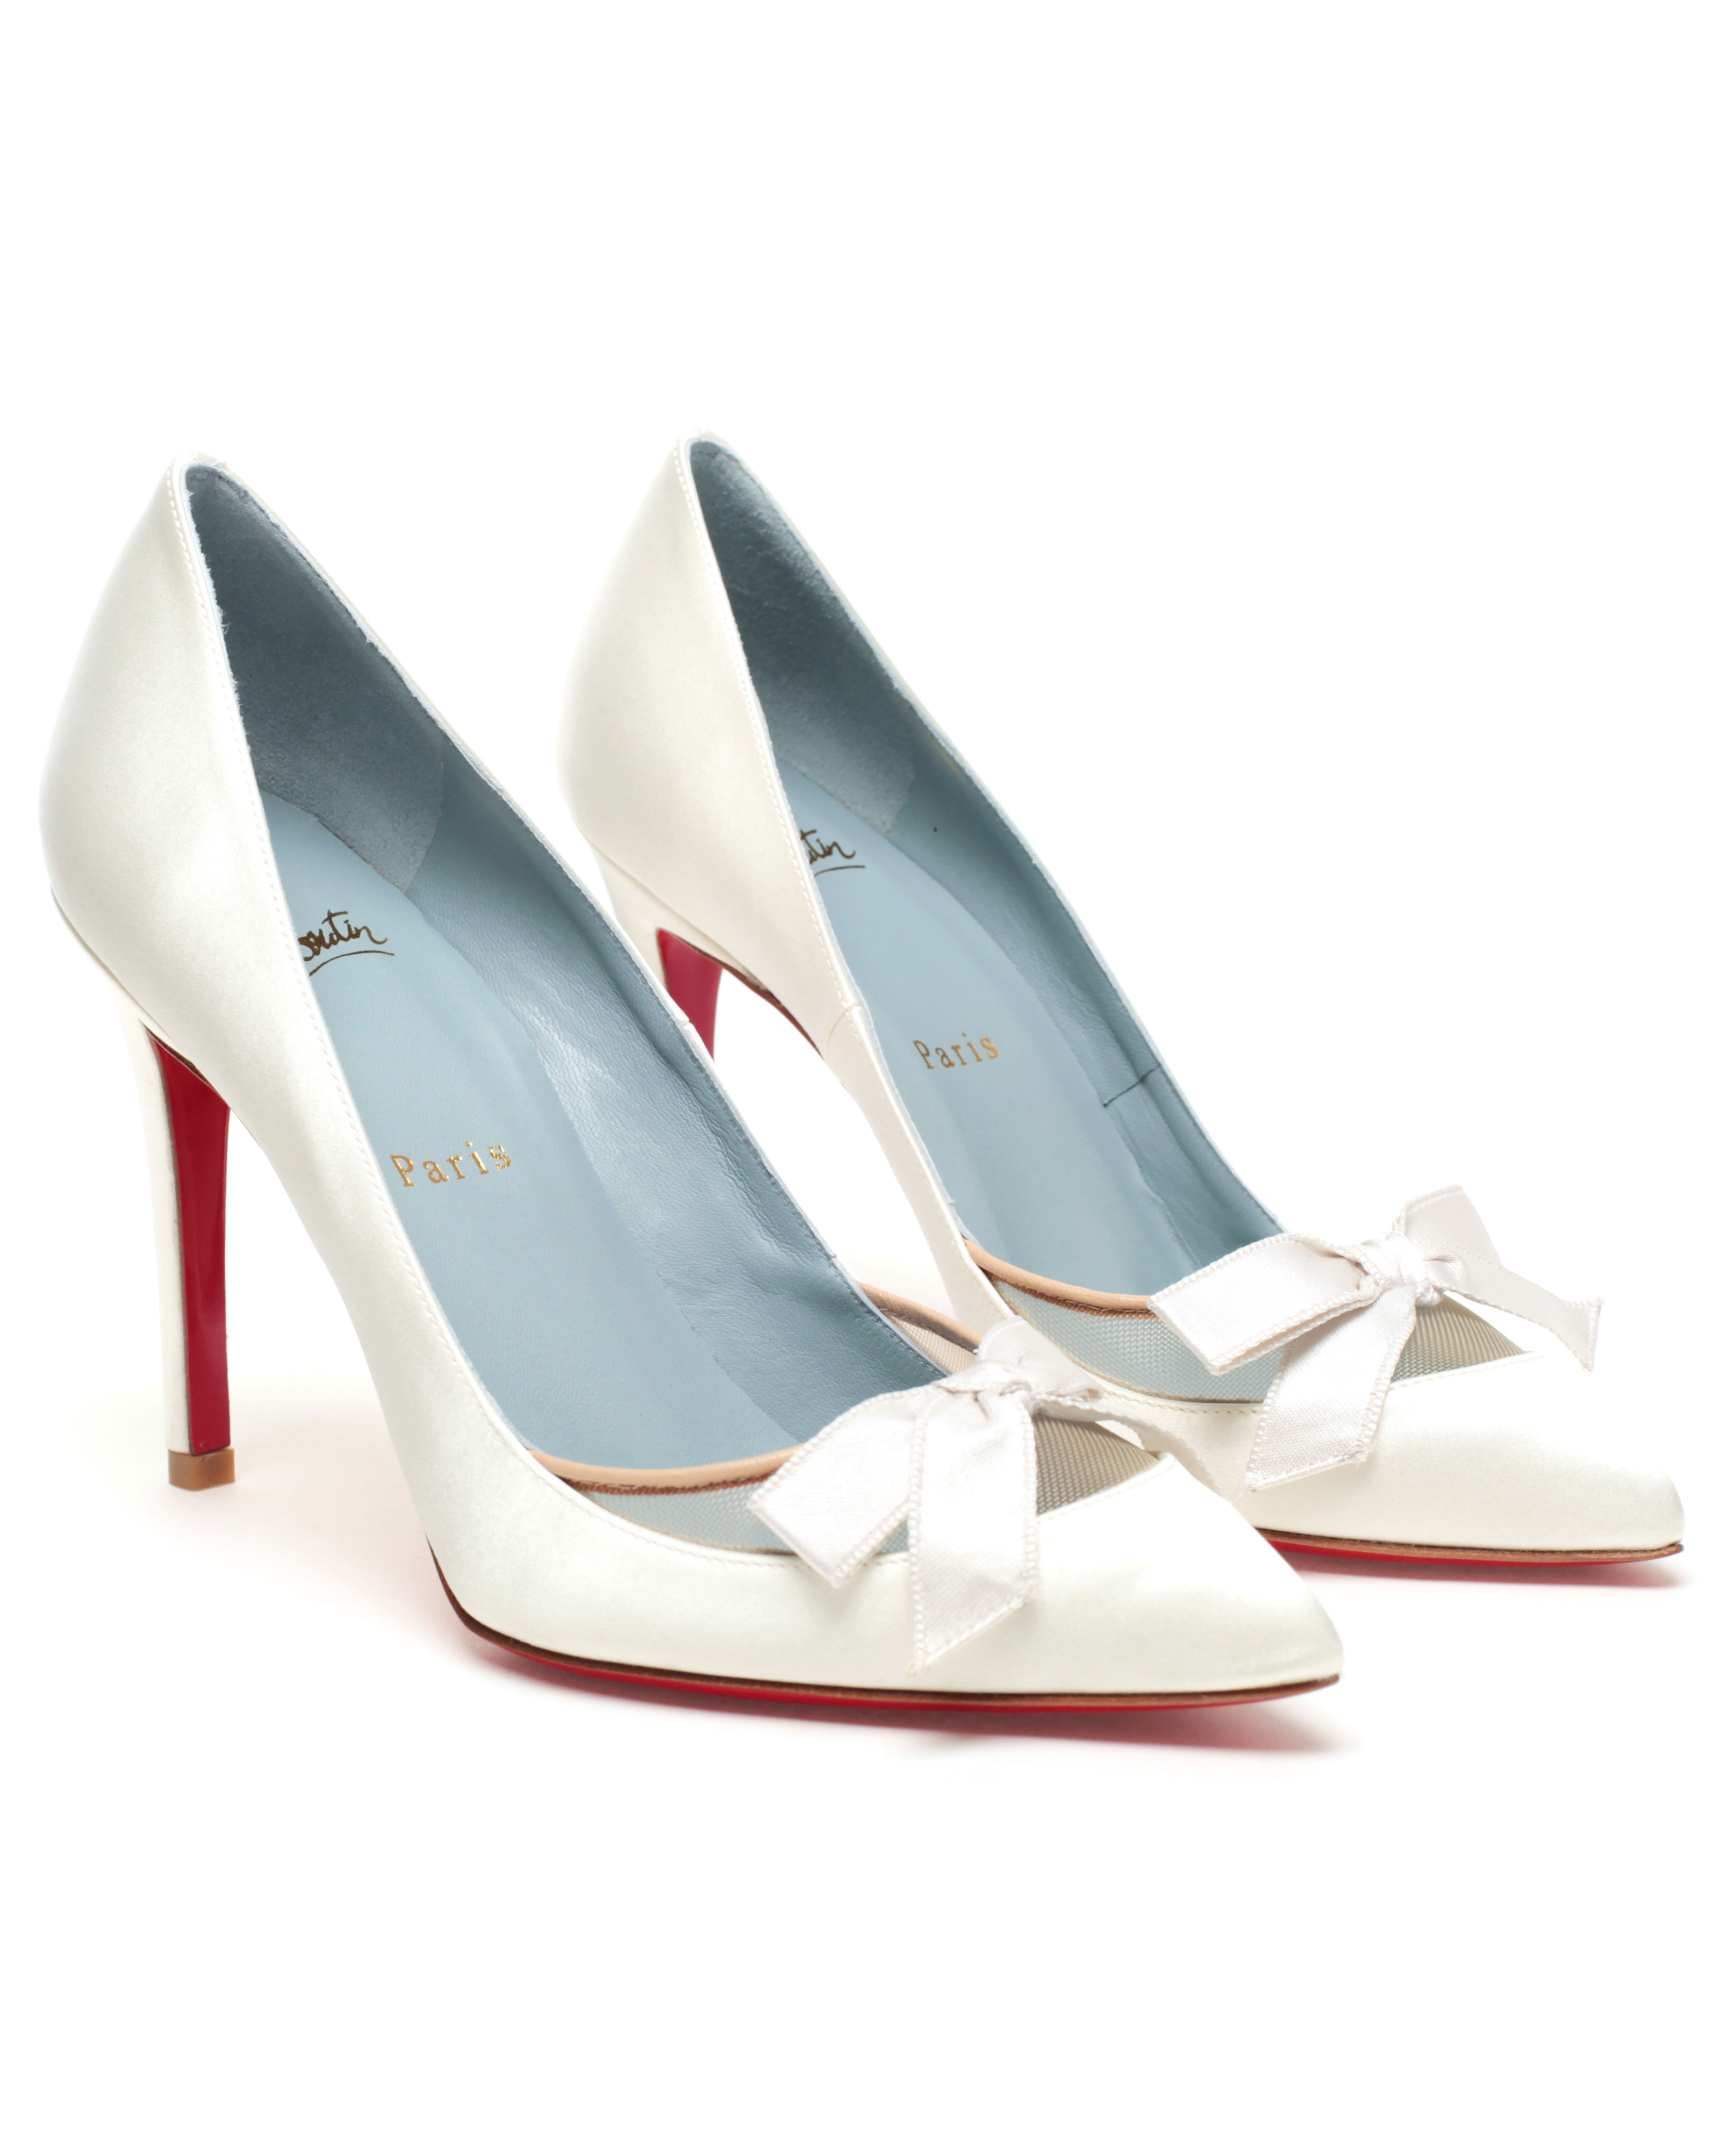 beb5399ac711 Christian Louboutin Love Me Bridal Shoes in White - Lyst